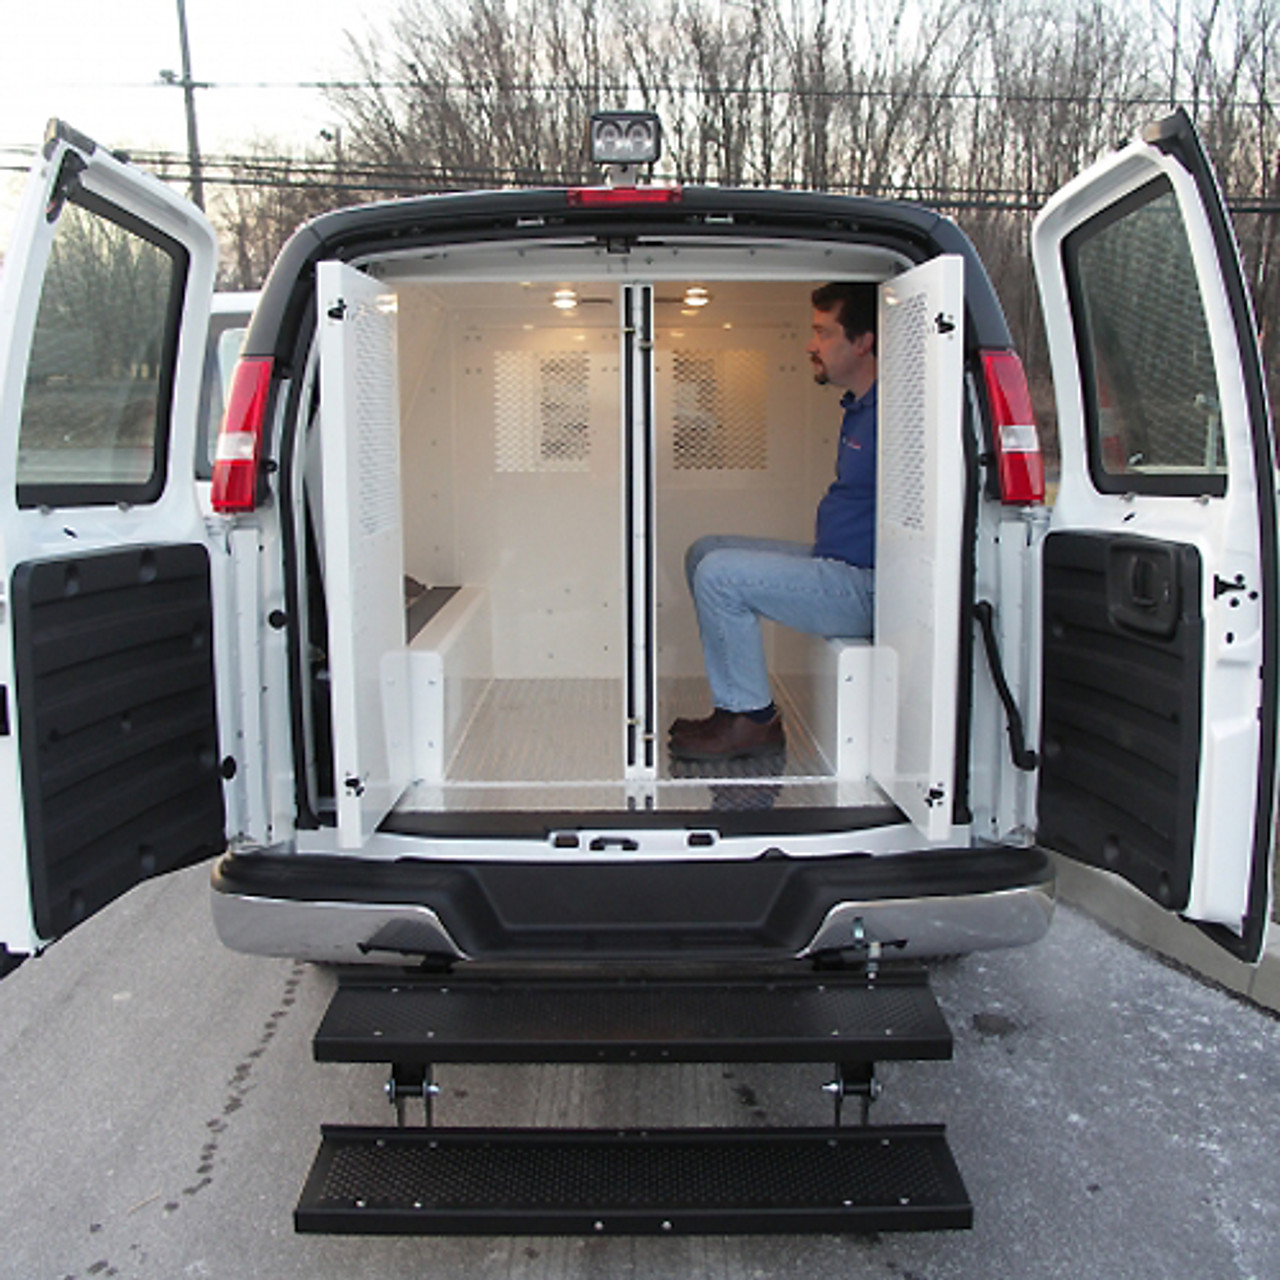 Prisoner Transport Van >> Van Police Prisoner Transport Insert 3 Door 100 Inch By Havis